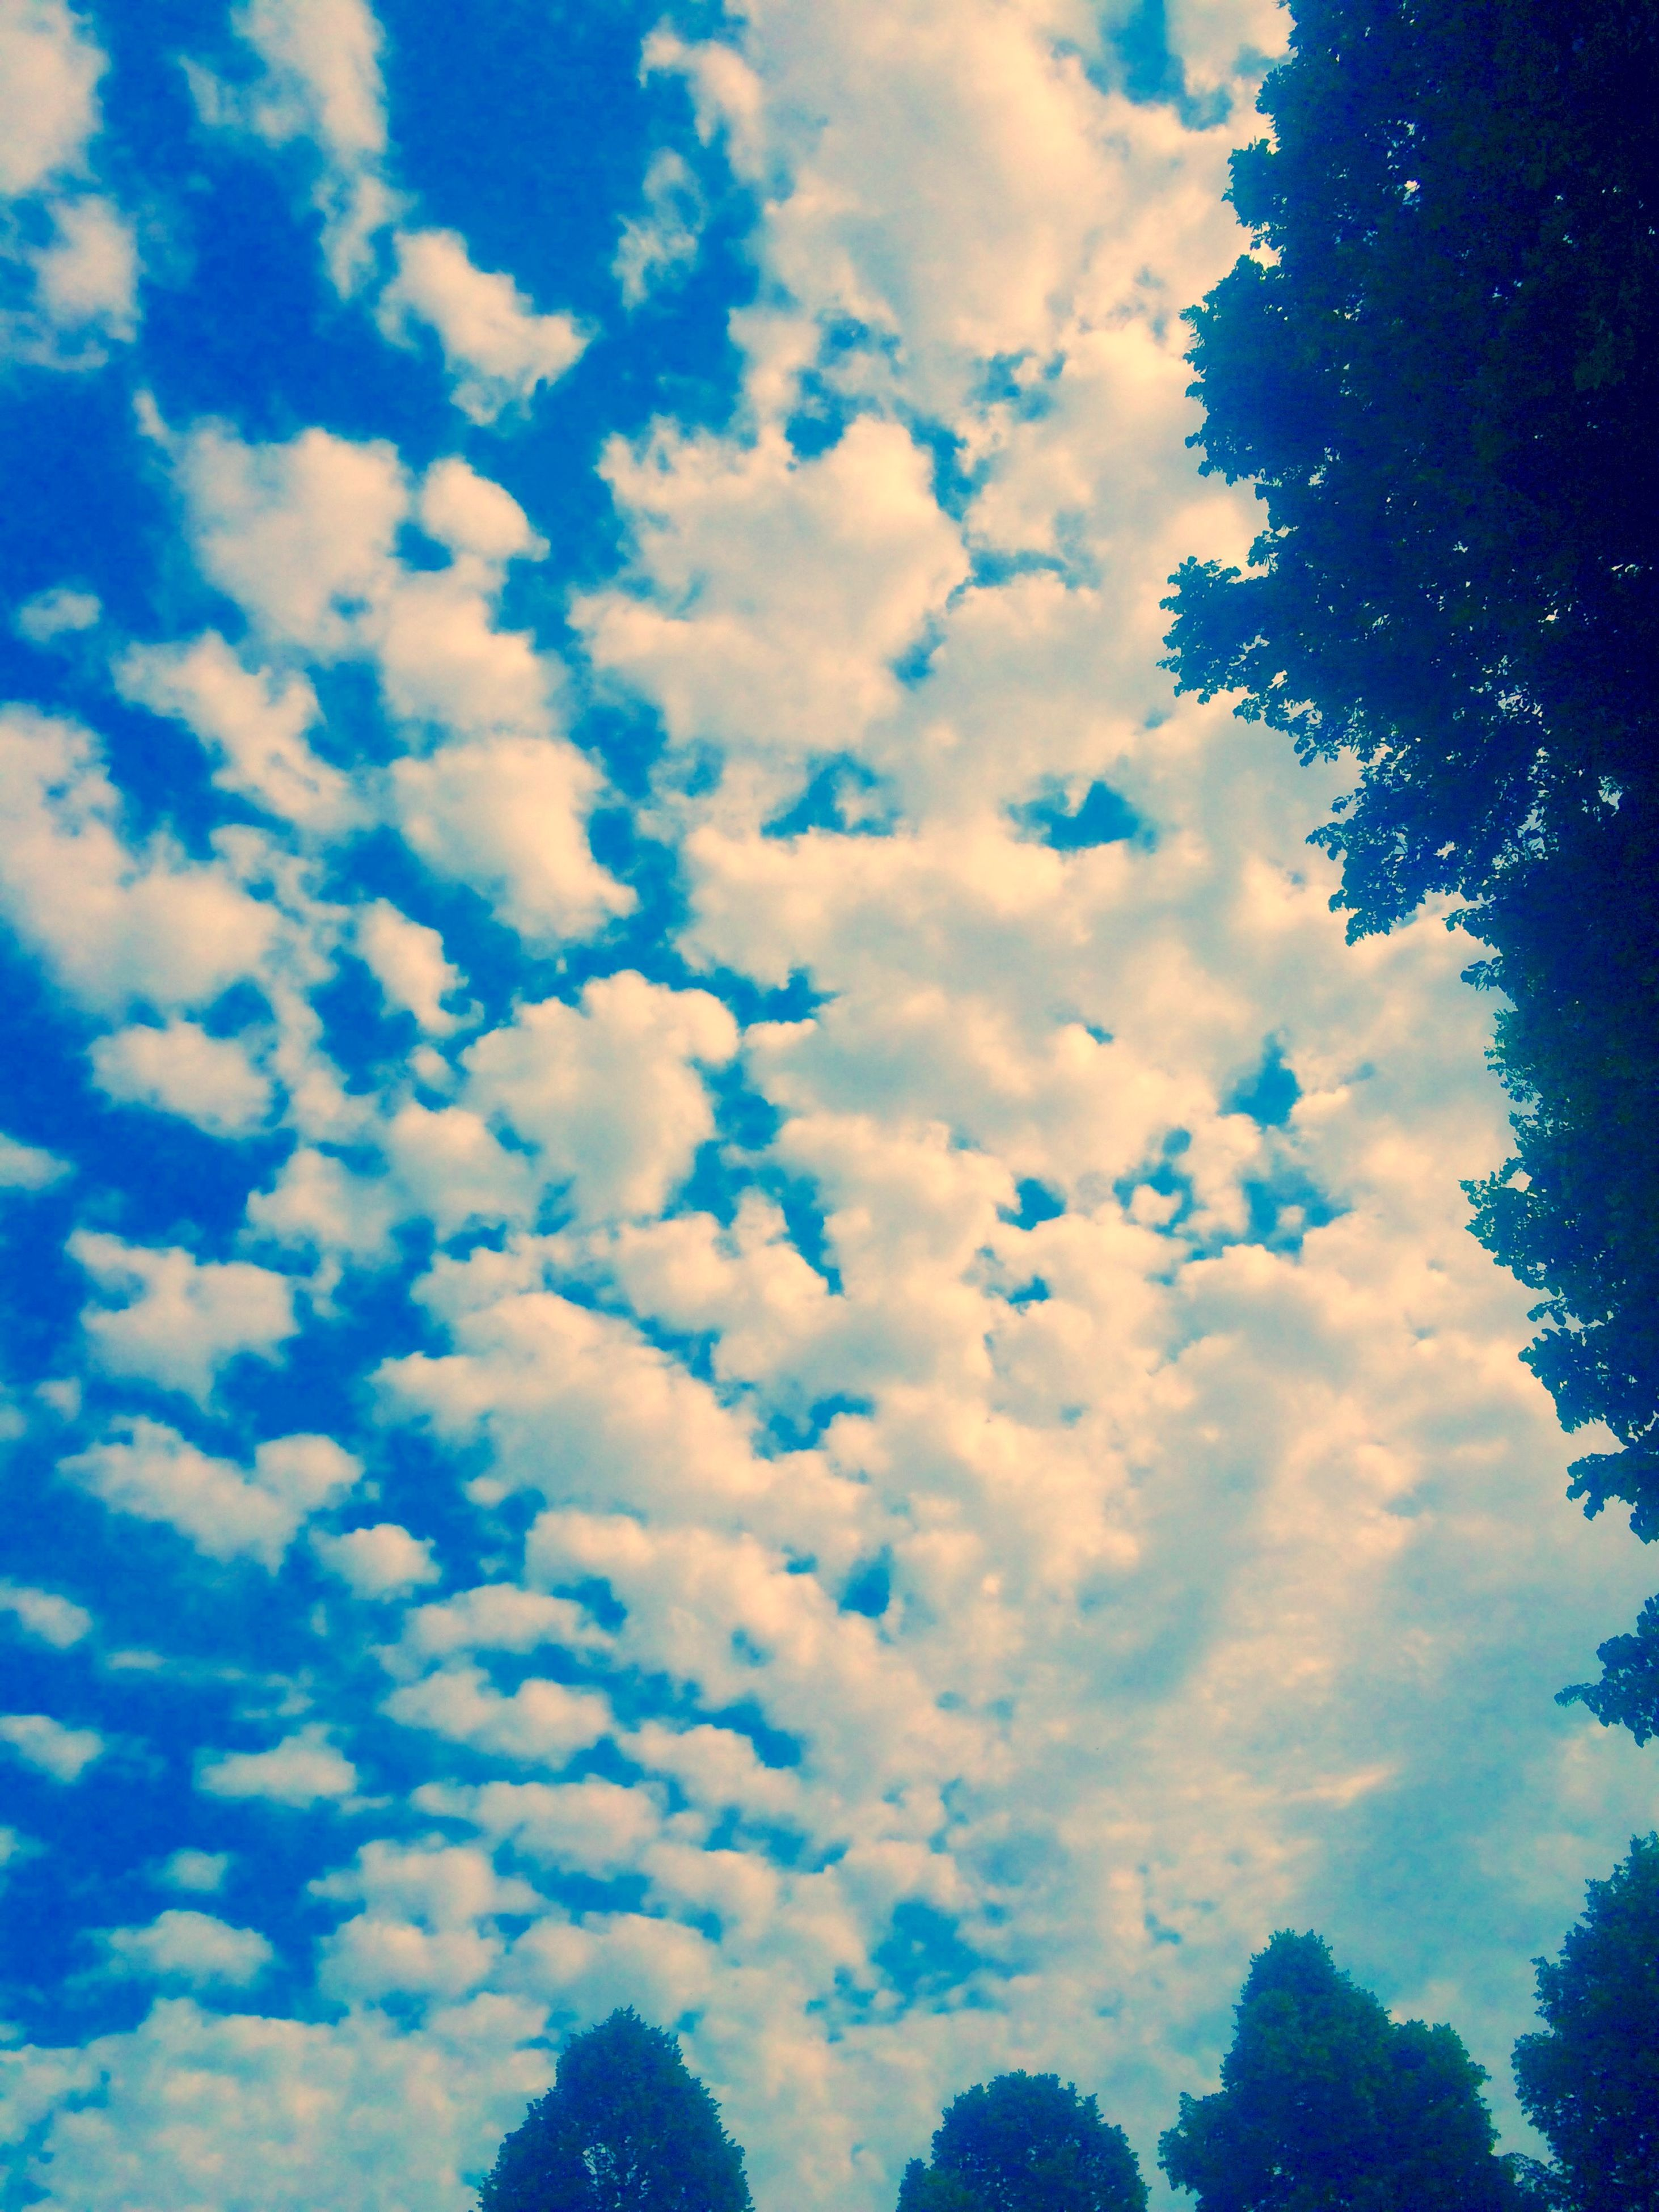 low angle view, sky, blue, beauty in nature, tranquility, cloud - sky, tree, scenics, nature, tranquil scene, cloud, cloudy, silhouette, idyllic, outdoors, growth, no people, cloudscape, day, sunlight